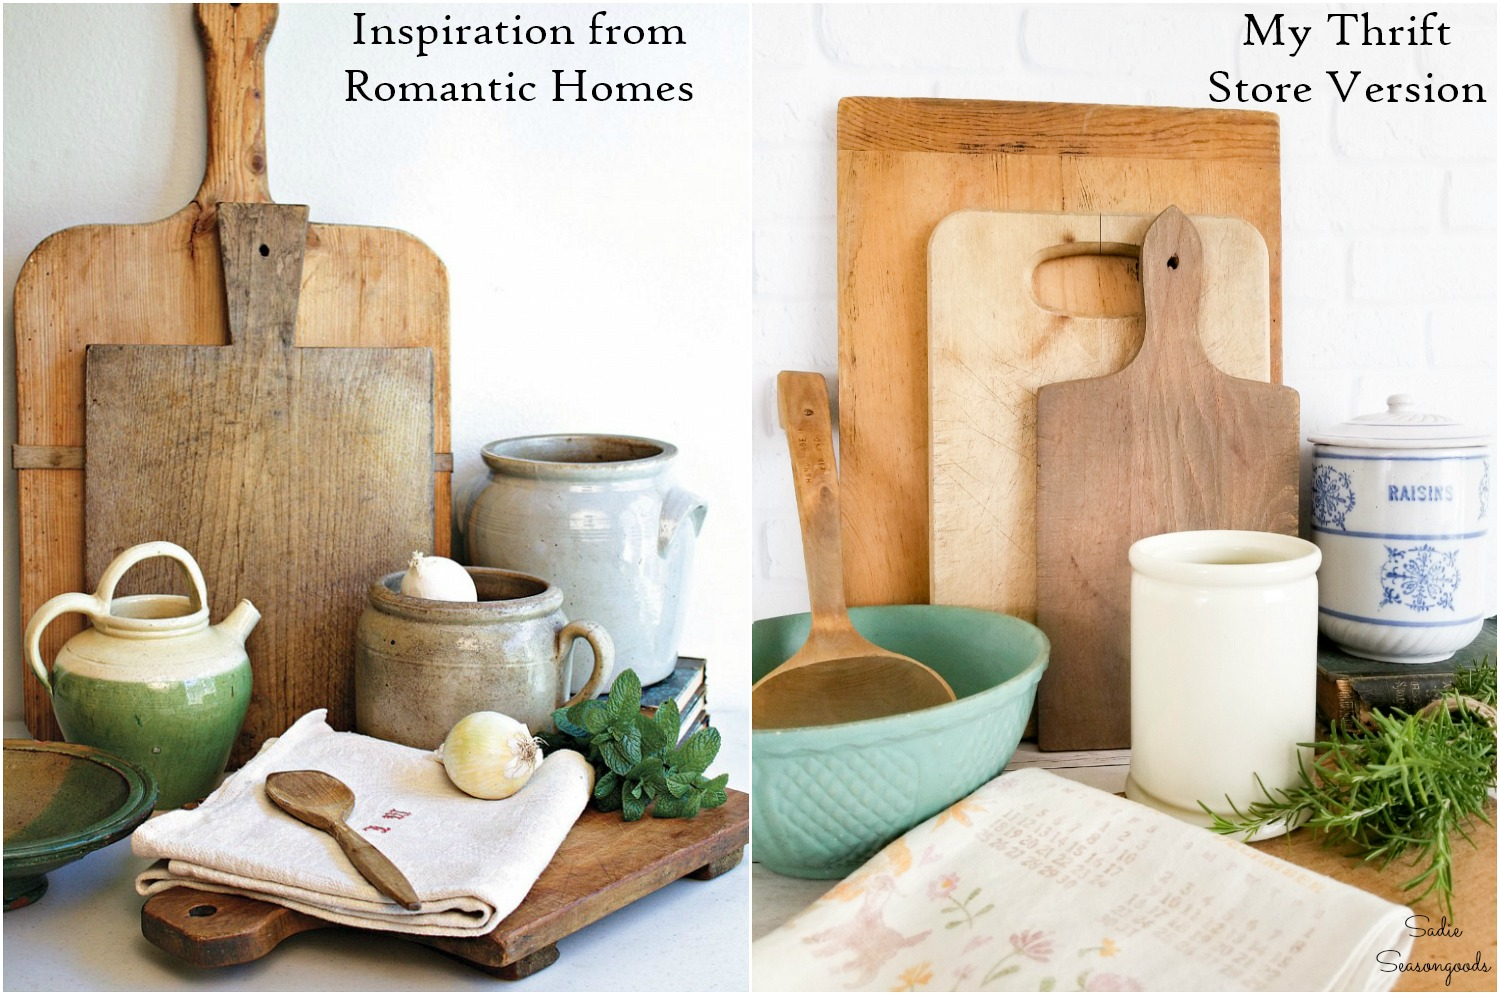 Thrift store home decor for a French farmhouse kitchen